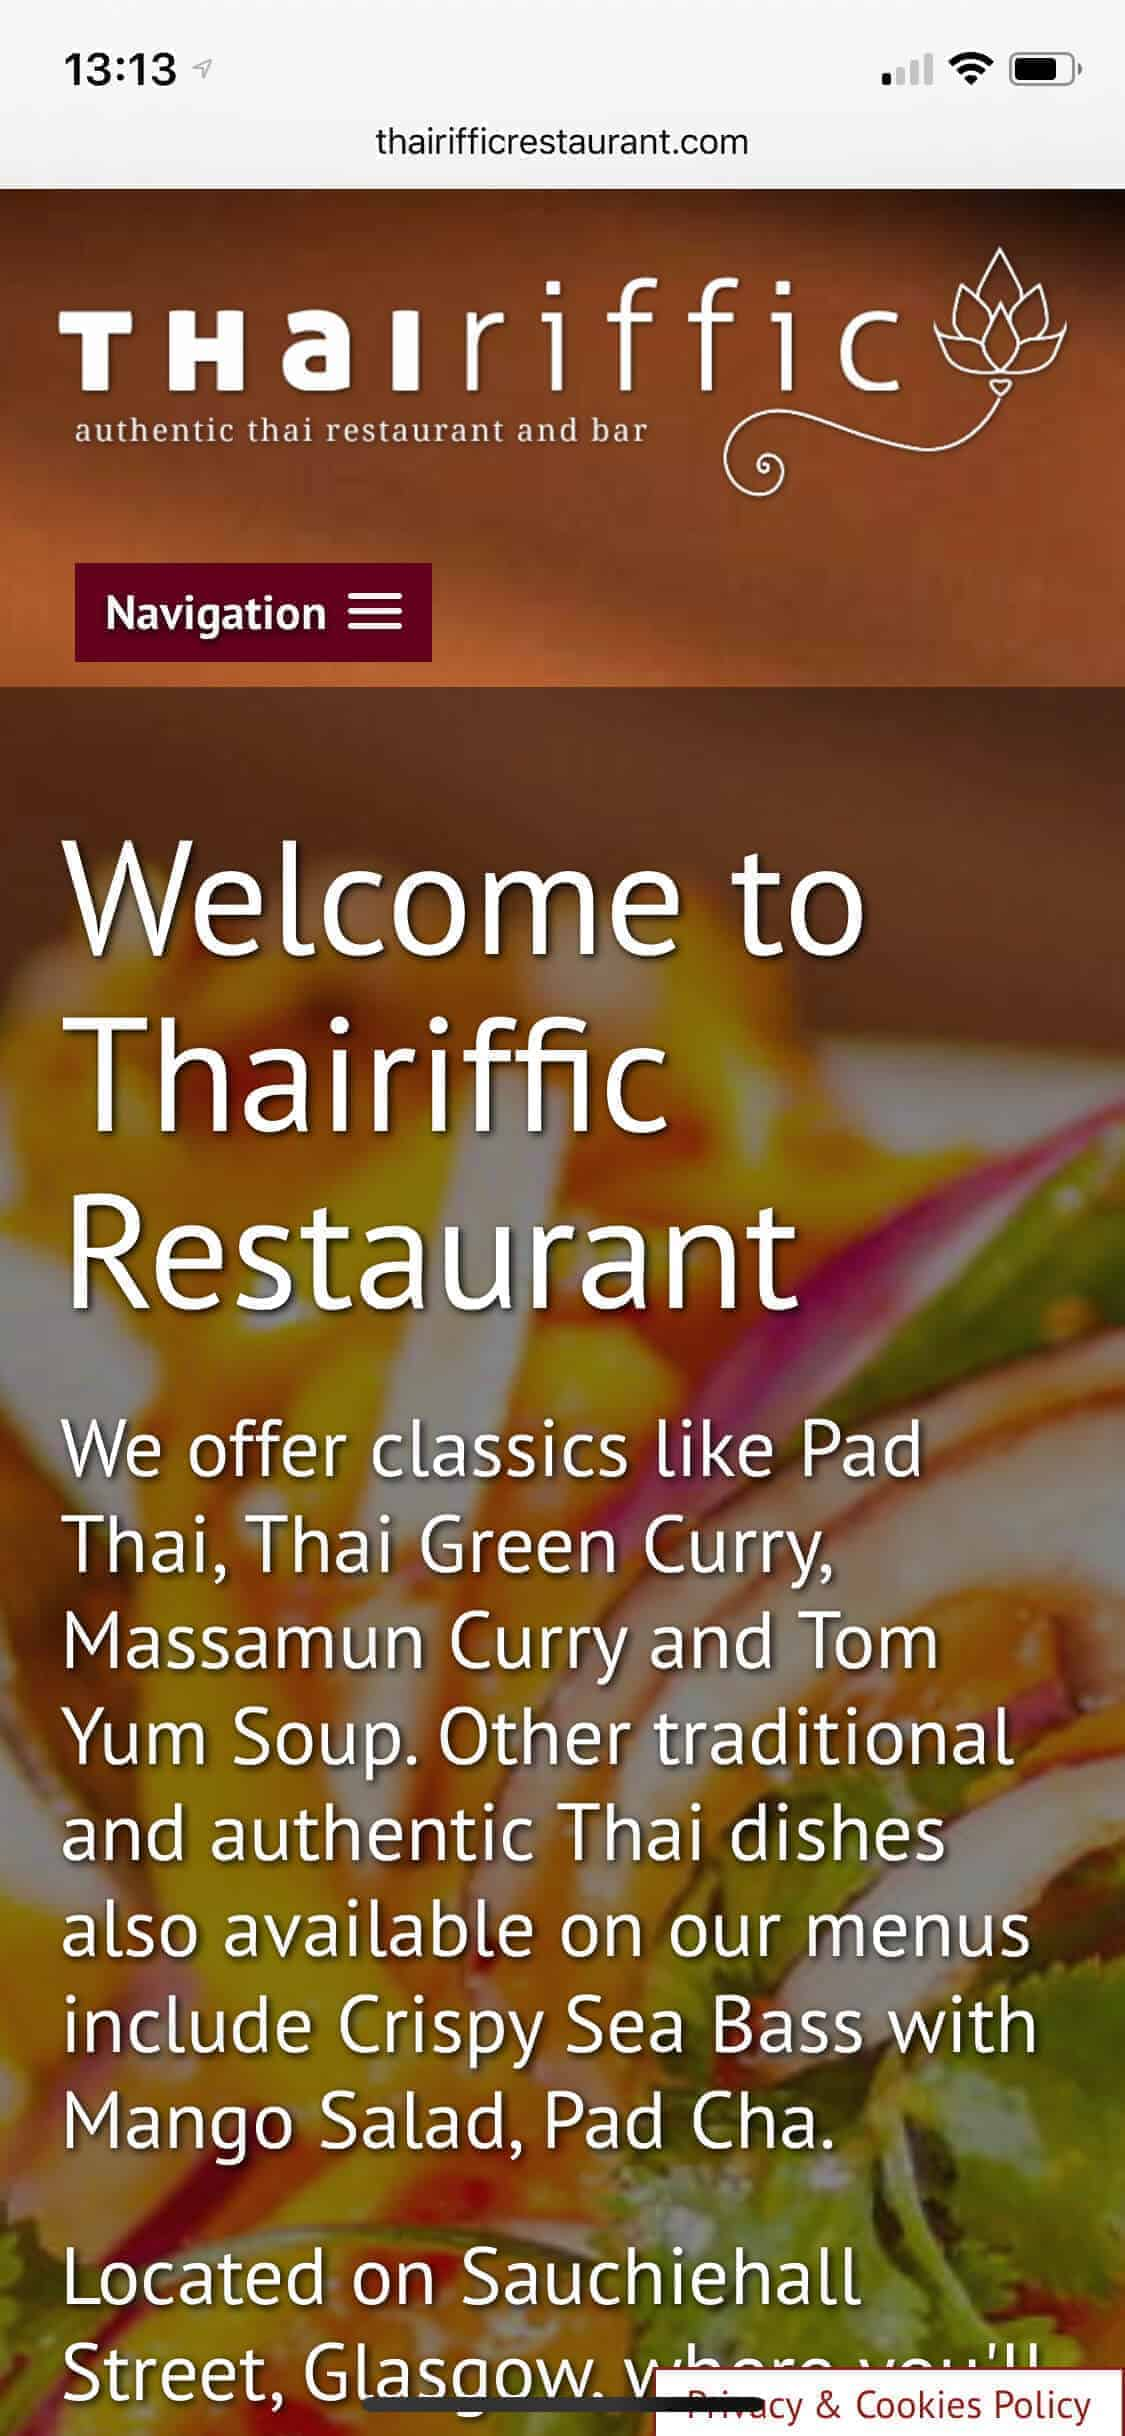 Thairifffic mobile